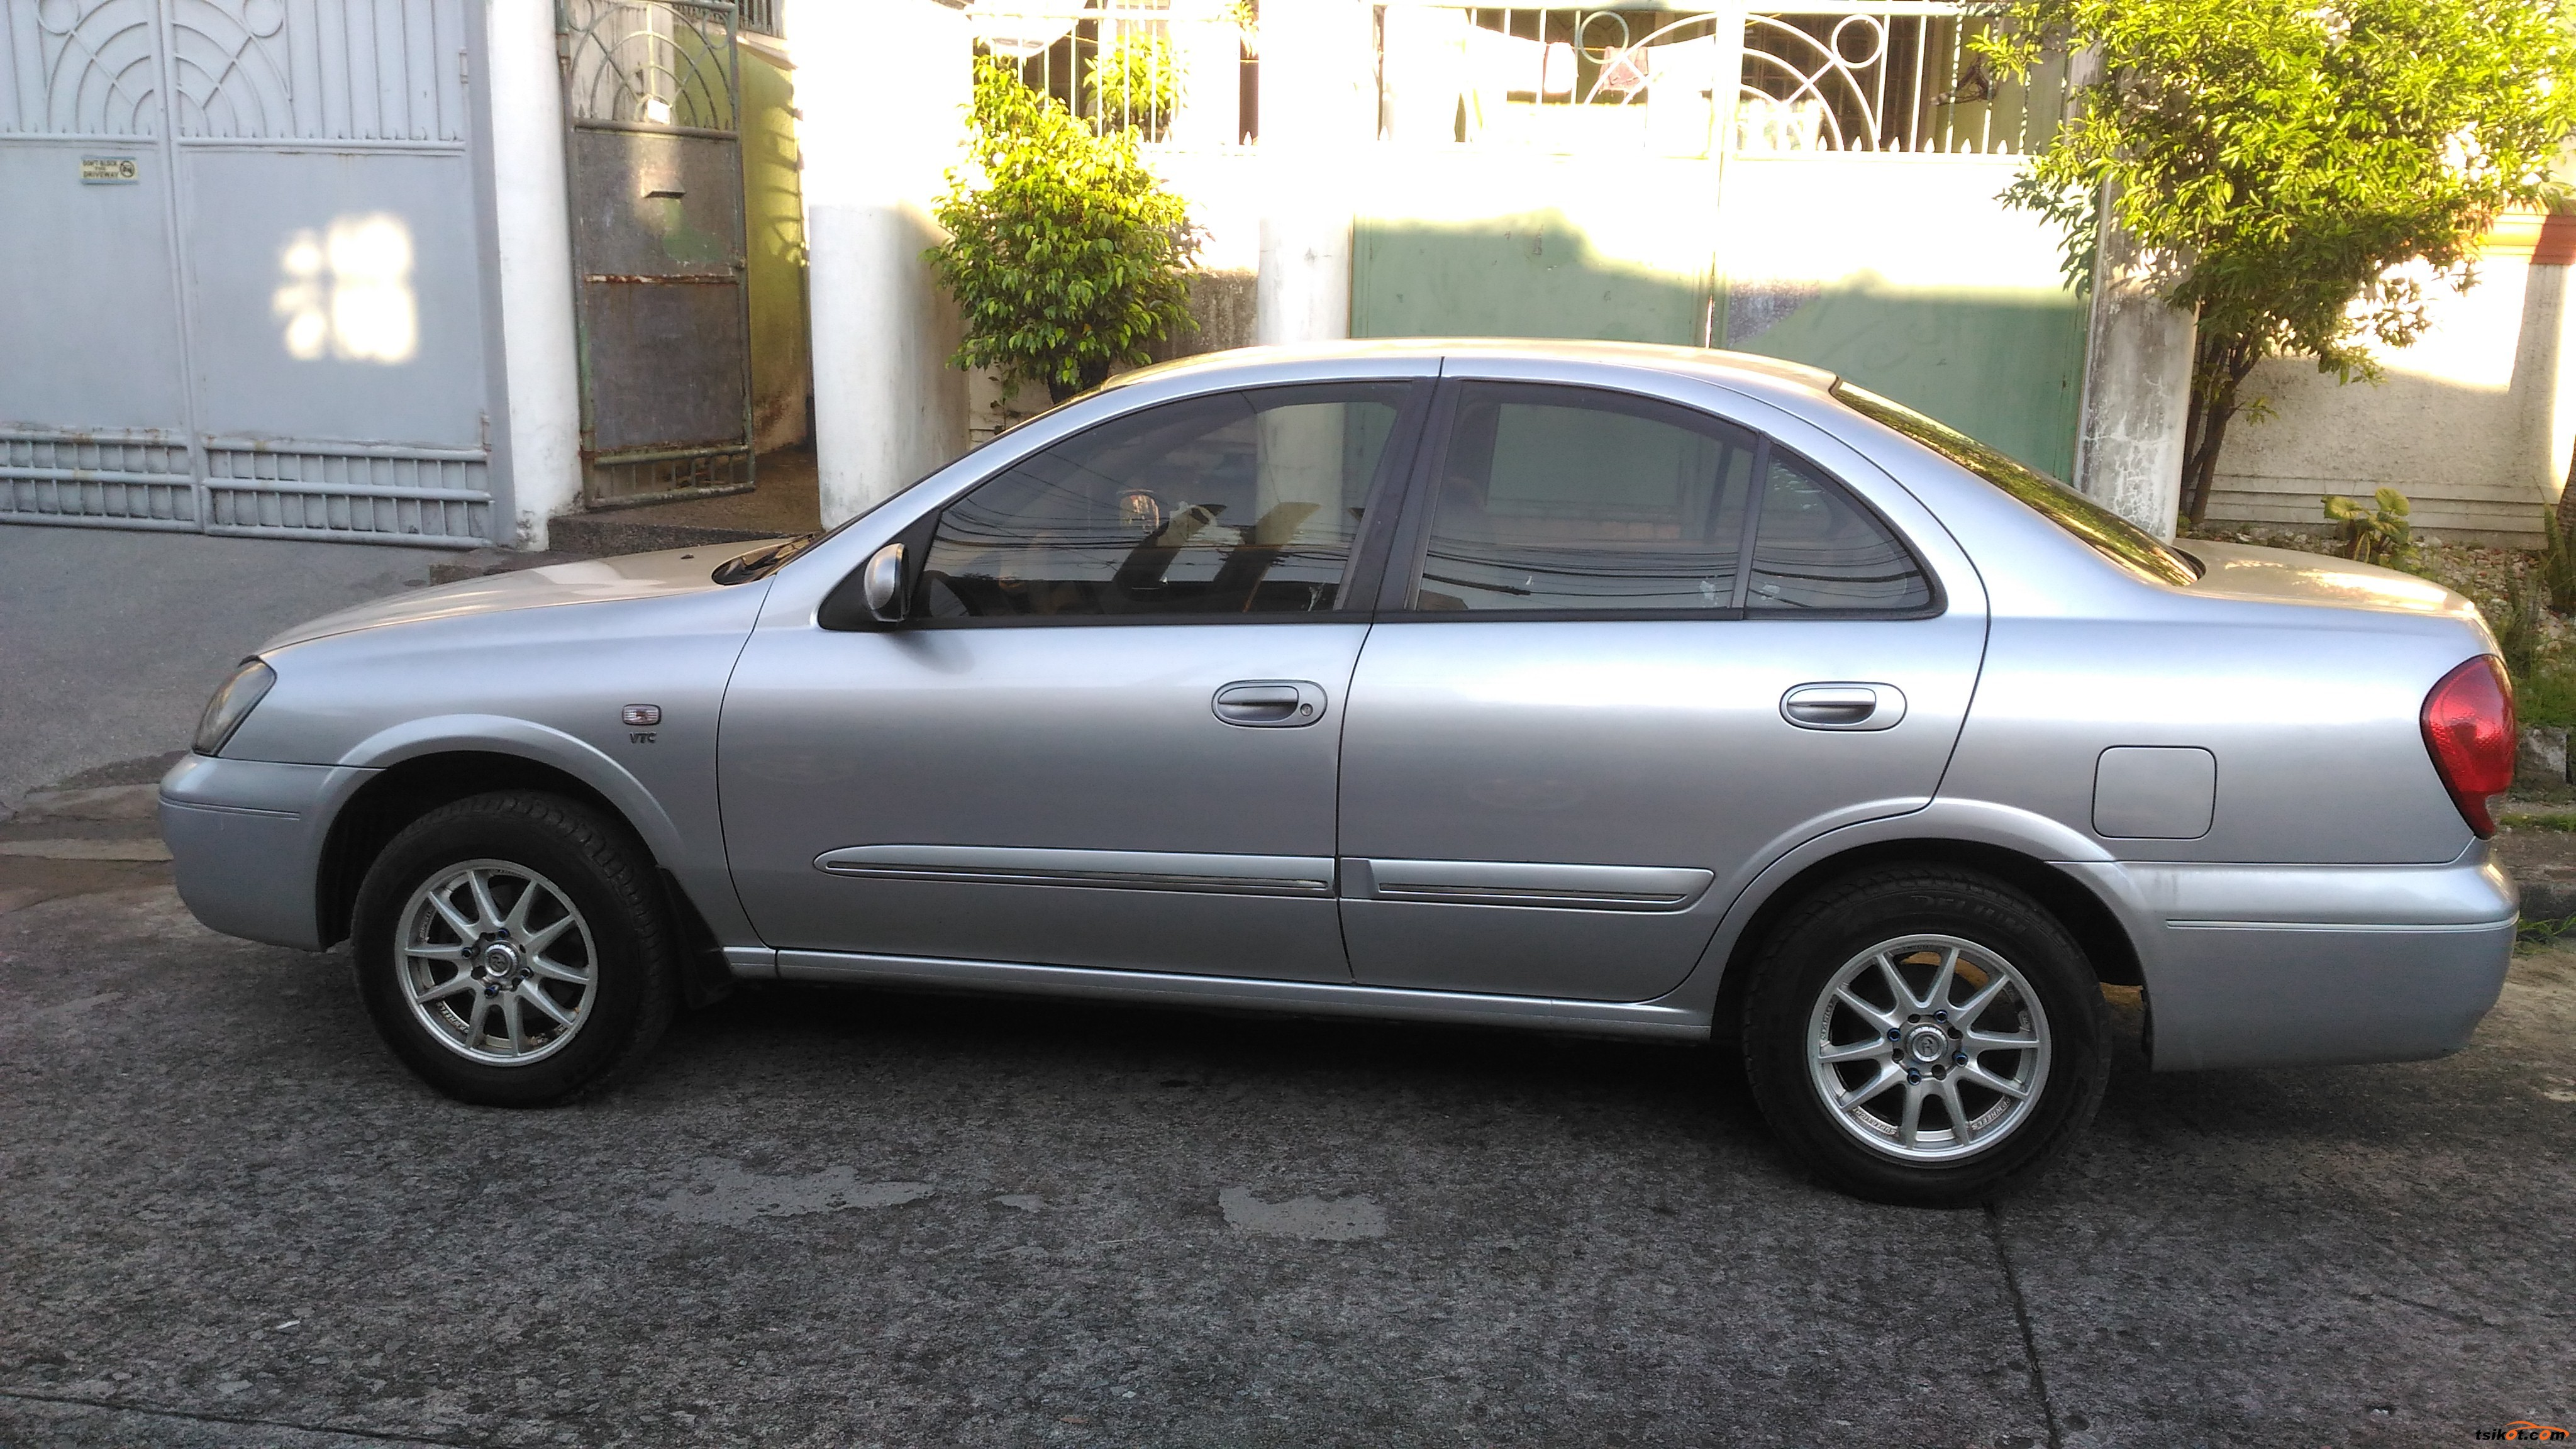 nissan sentra 2005 car for sale metro manila philippines. Black Bedroom Furniture Sets. Home Design Ideas